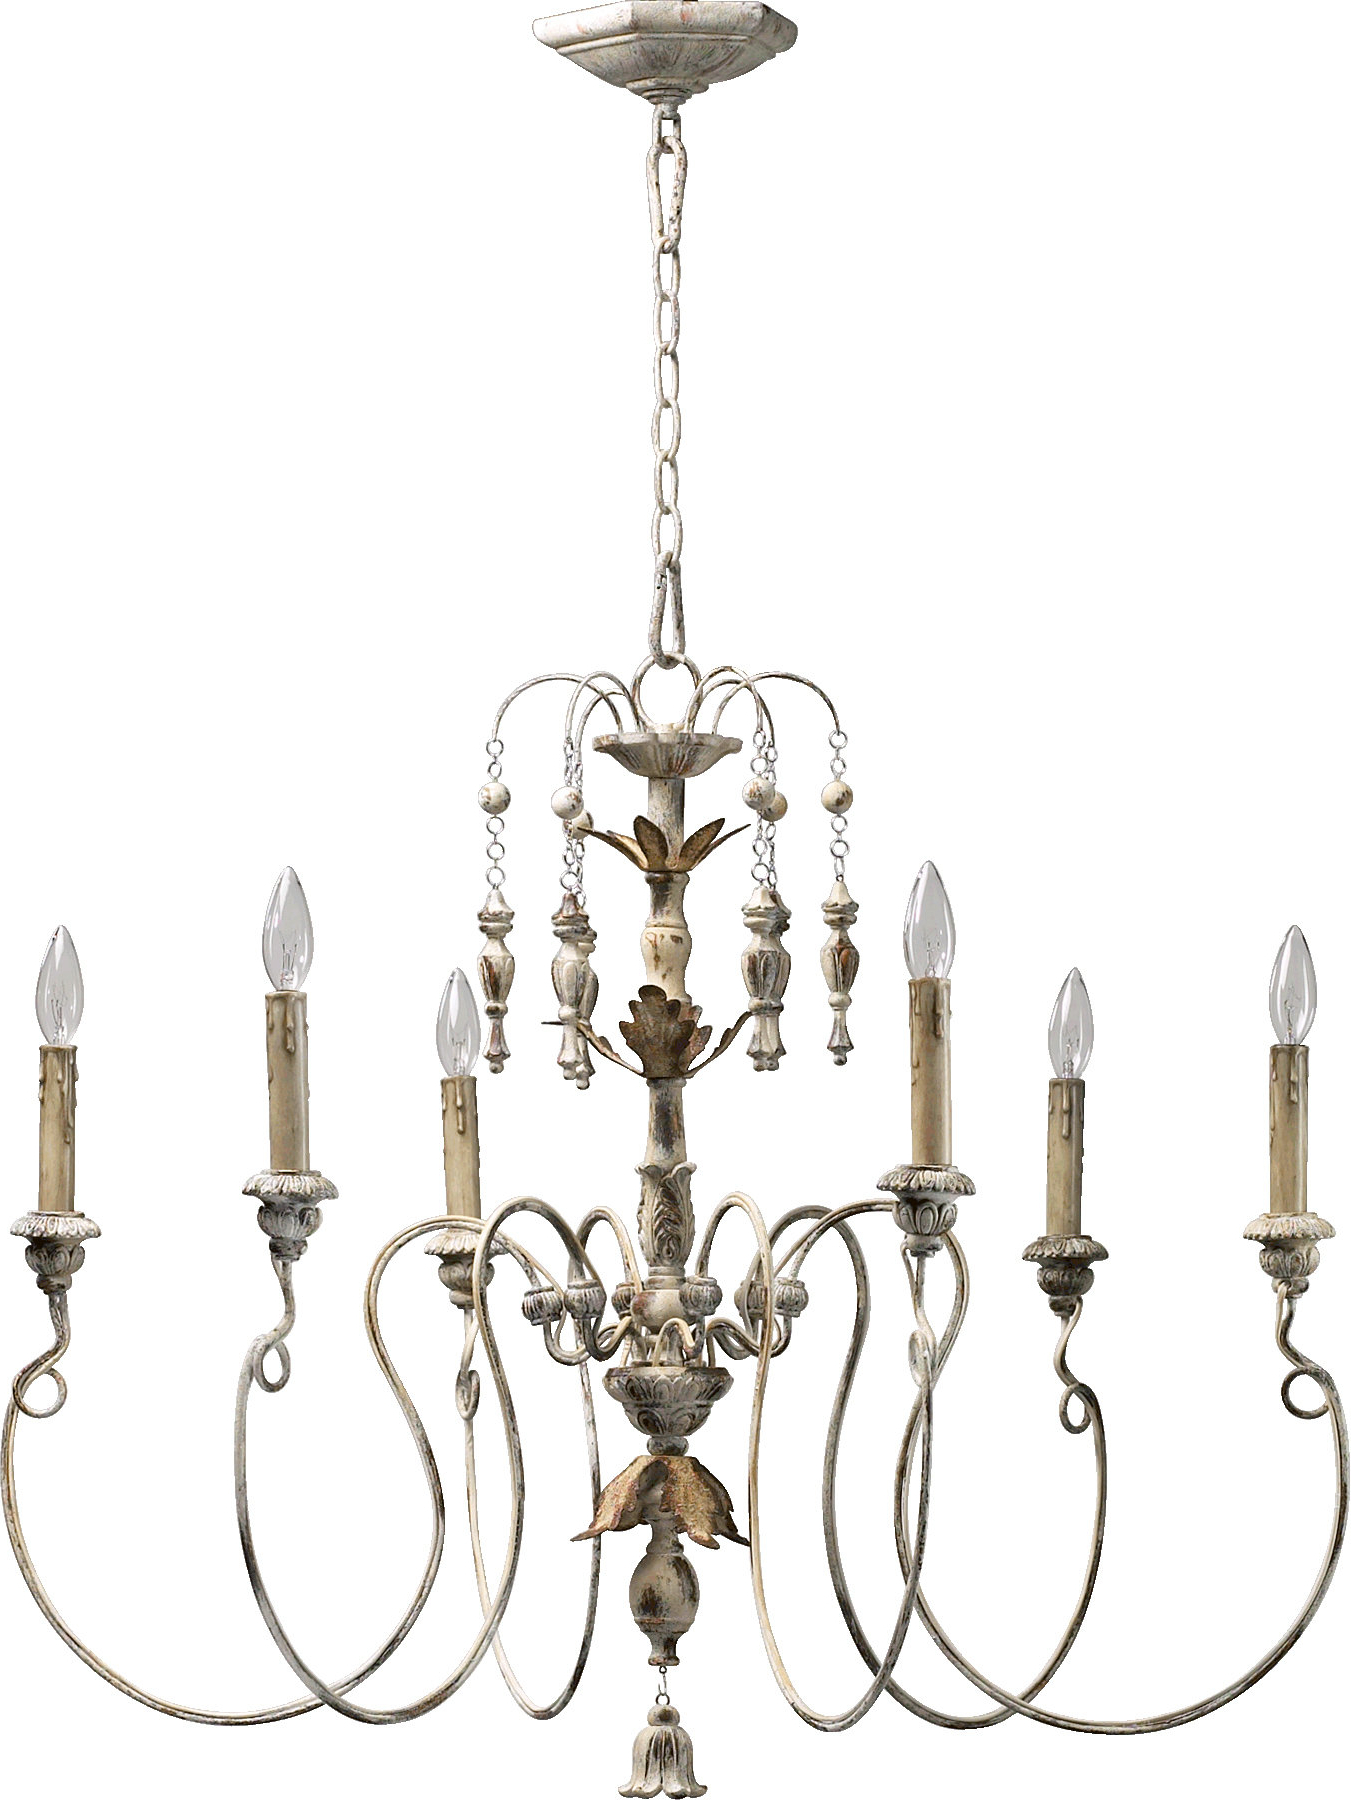 Paladino 6 Light Chandelier Inside Most Current Corneau 5 Light Chandeliers (View 18 of 25)